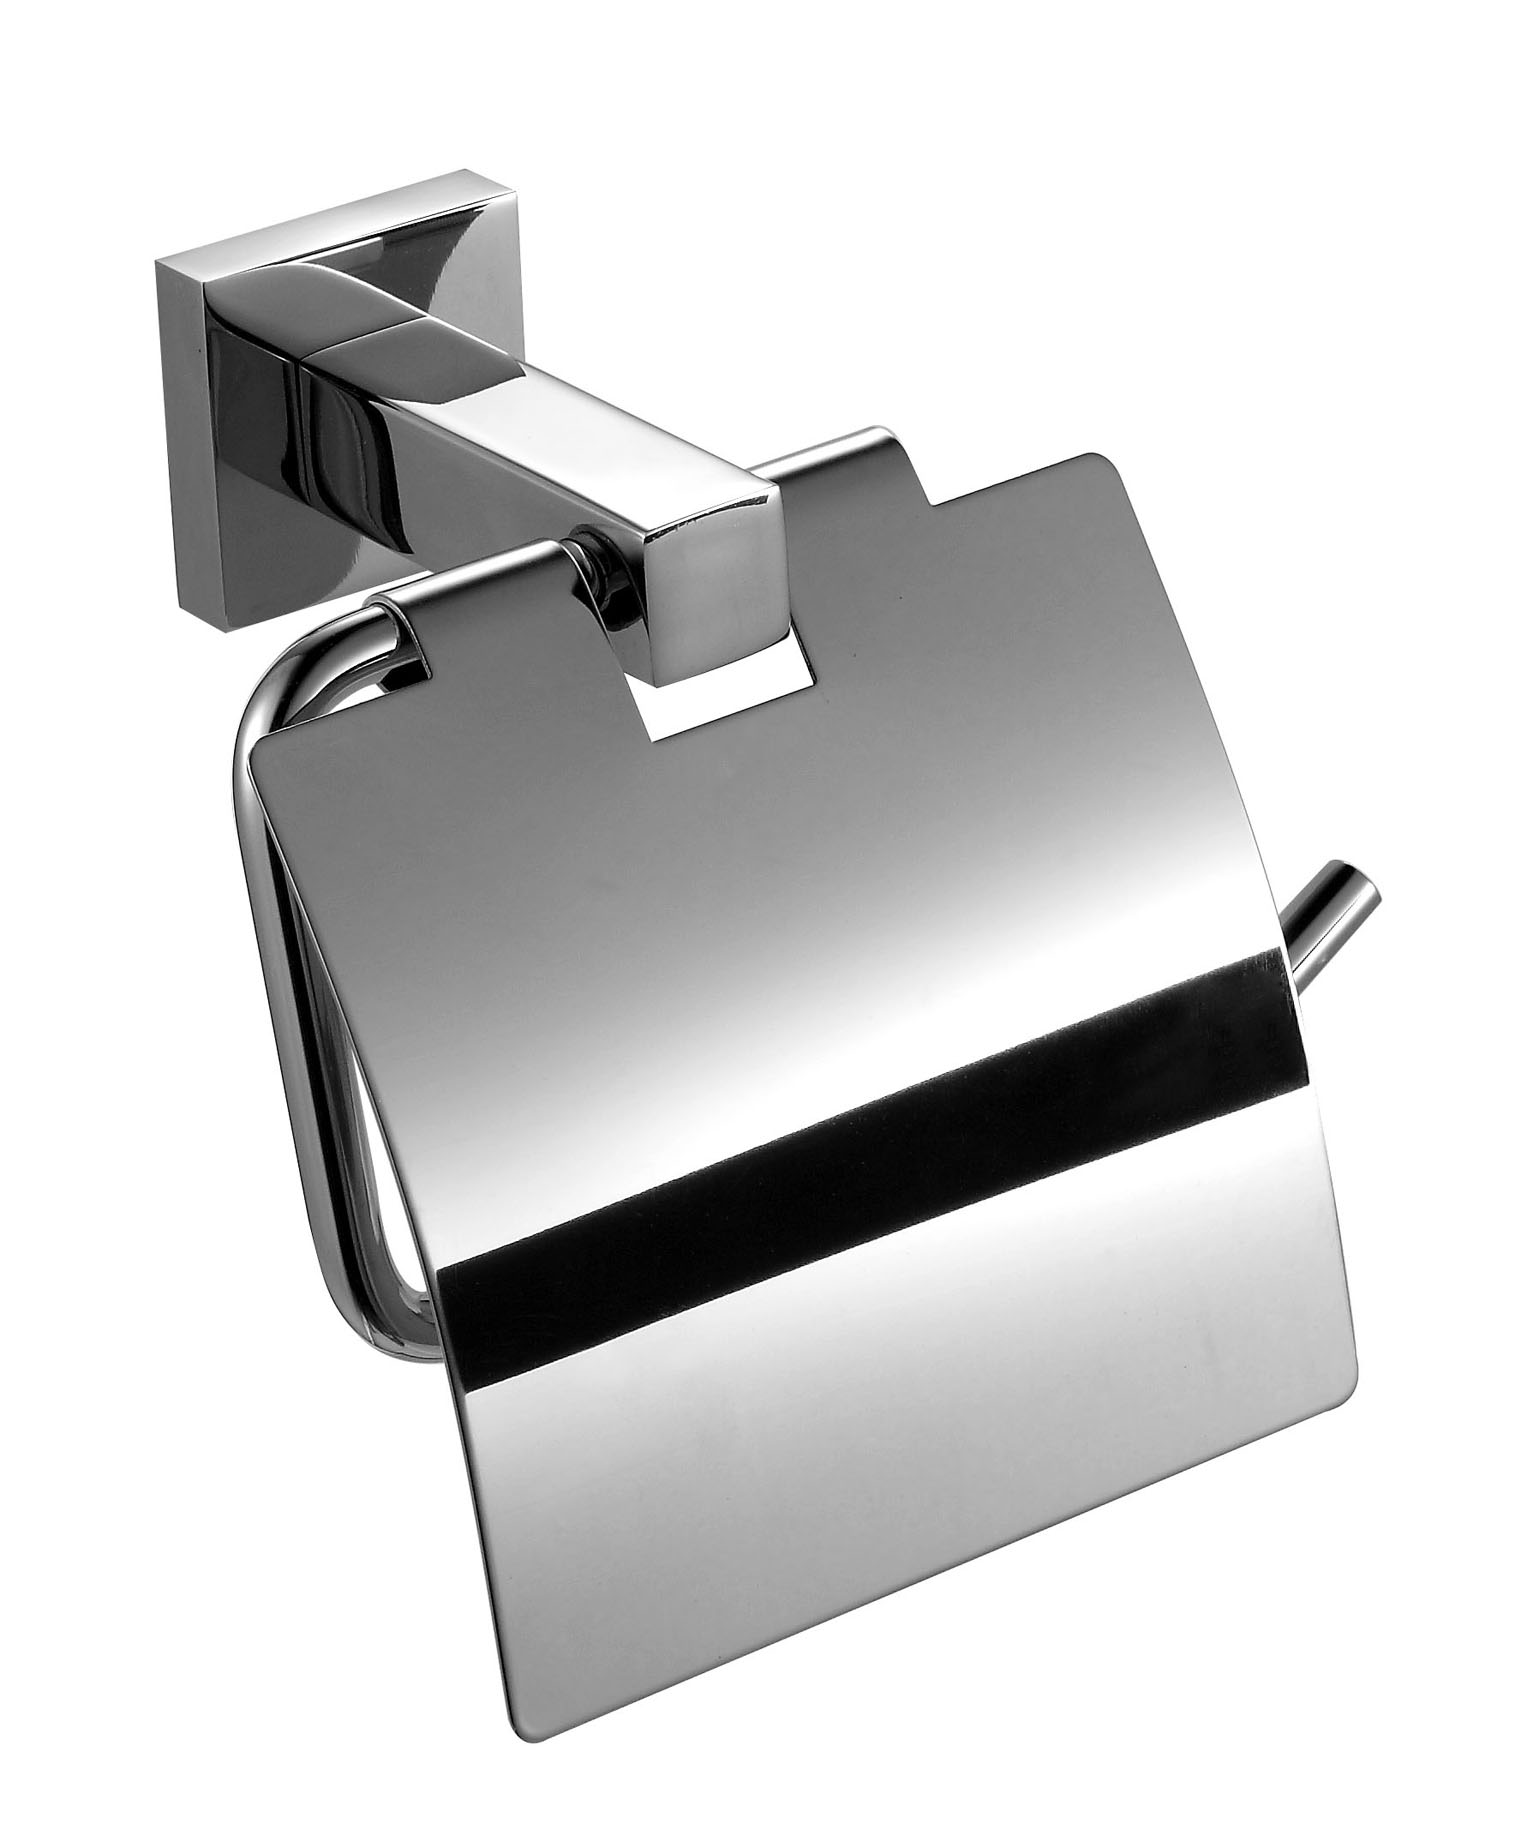 Polished Finish Tissue holder,Toilet Paper Holder with Waterproof Cover,Bathroom Accessories